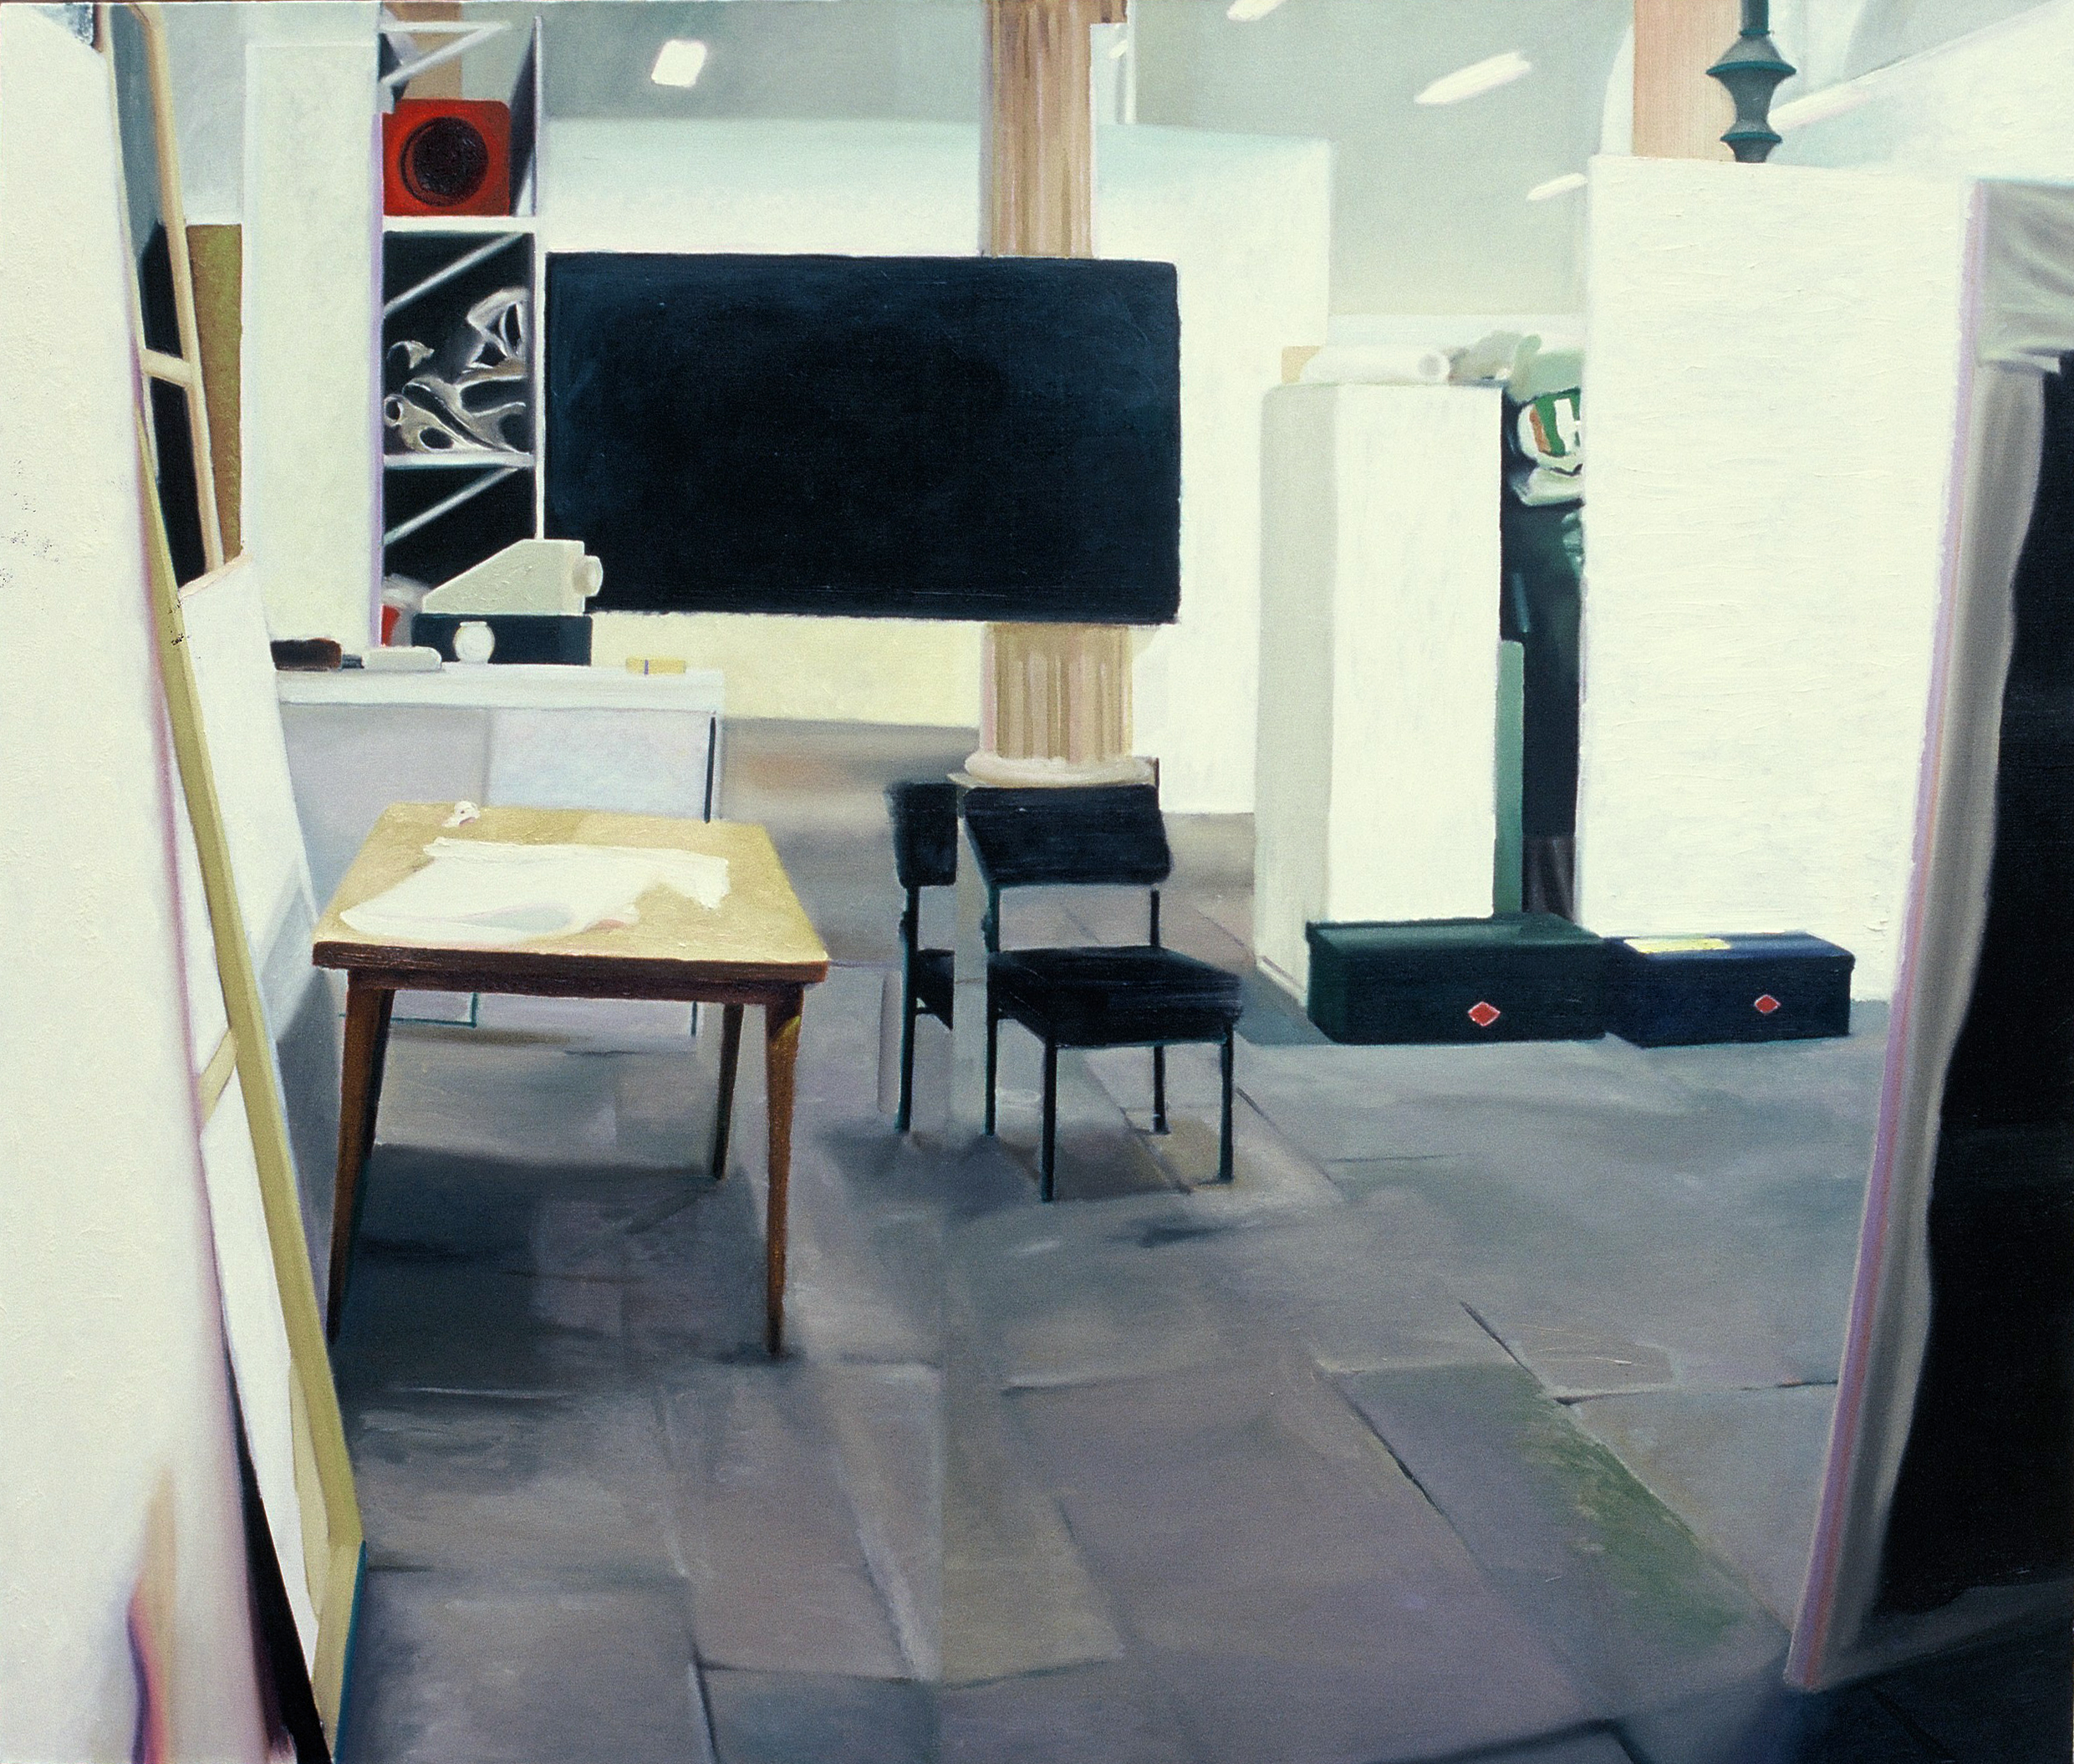 Tableau Noir , 1999, oil on canvas, 153 x 183cm. Private collection, USA